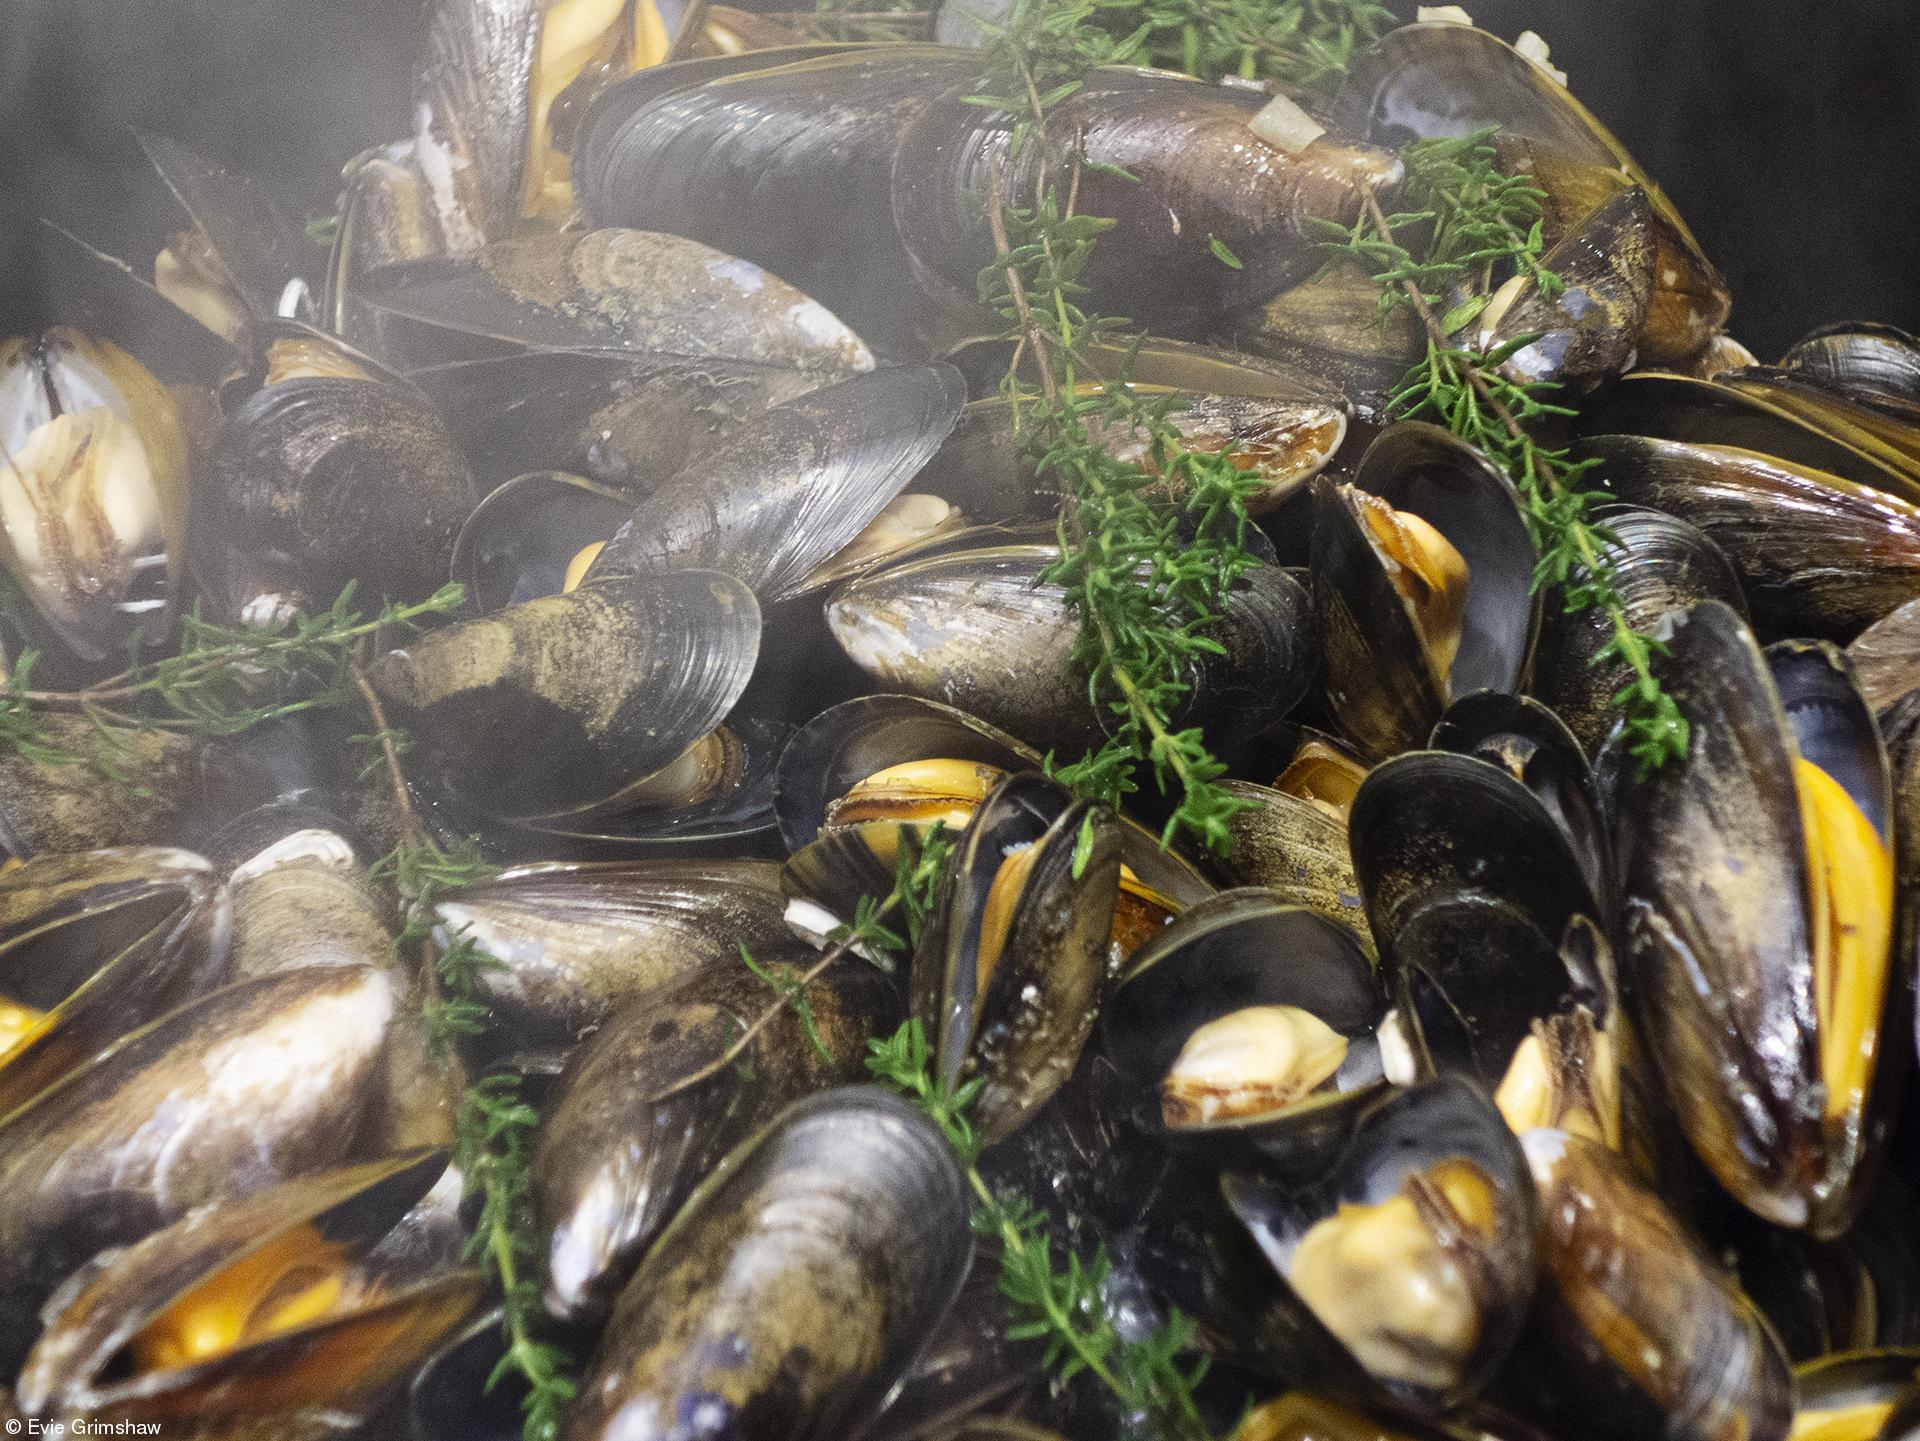 Young 10 and Under - Evie Grimshaw - Mussels with Steam